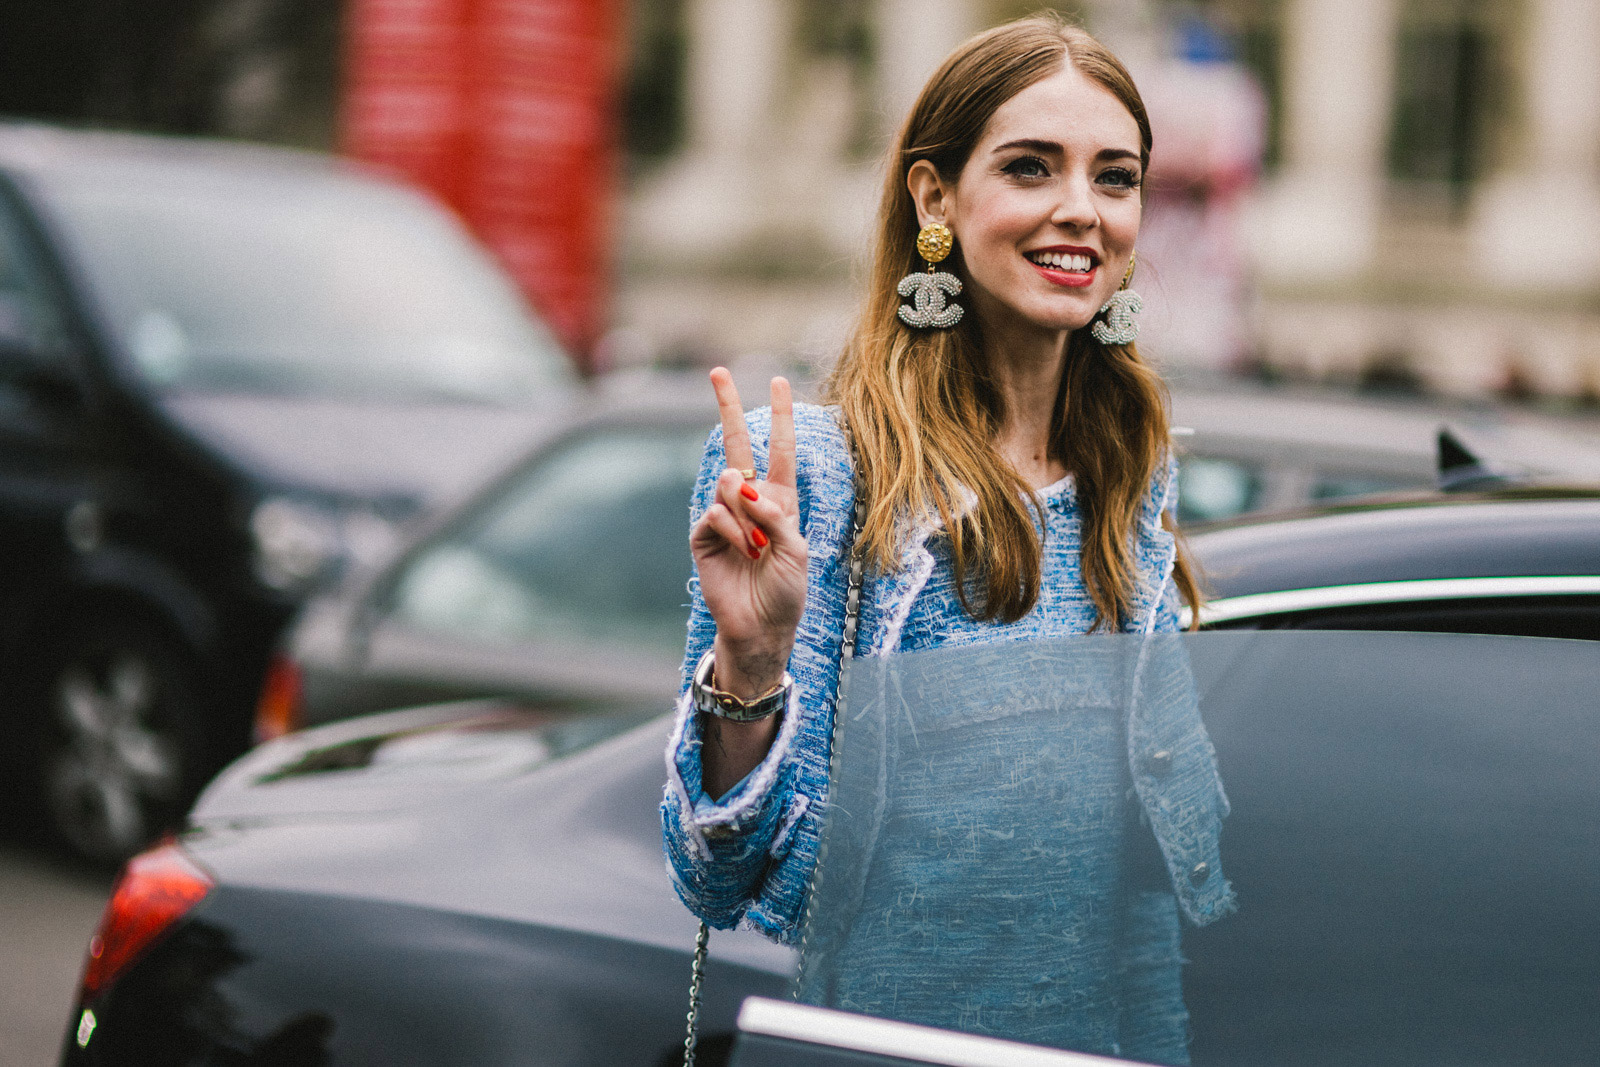 Shotbygio George Angelis Chiara Ferragni Paris Fashion Week Fall Winter 2015 2016 Street Style